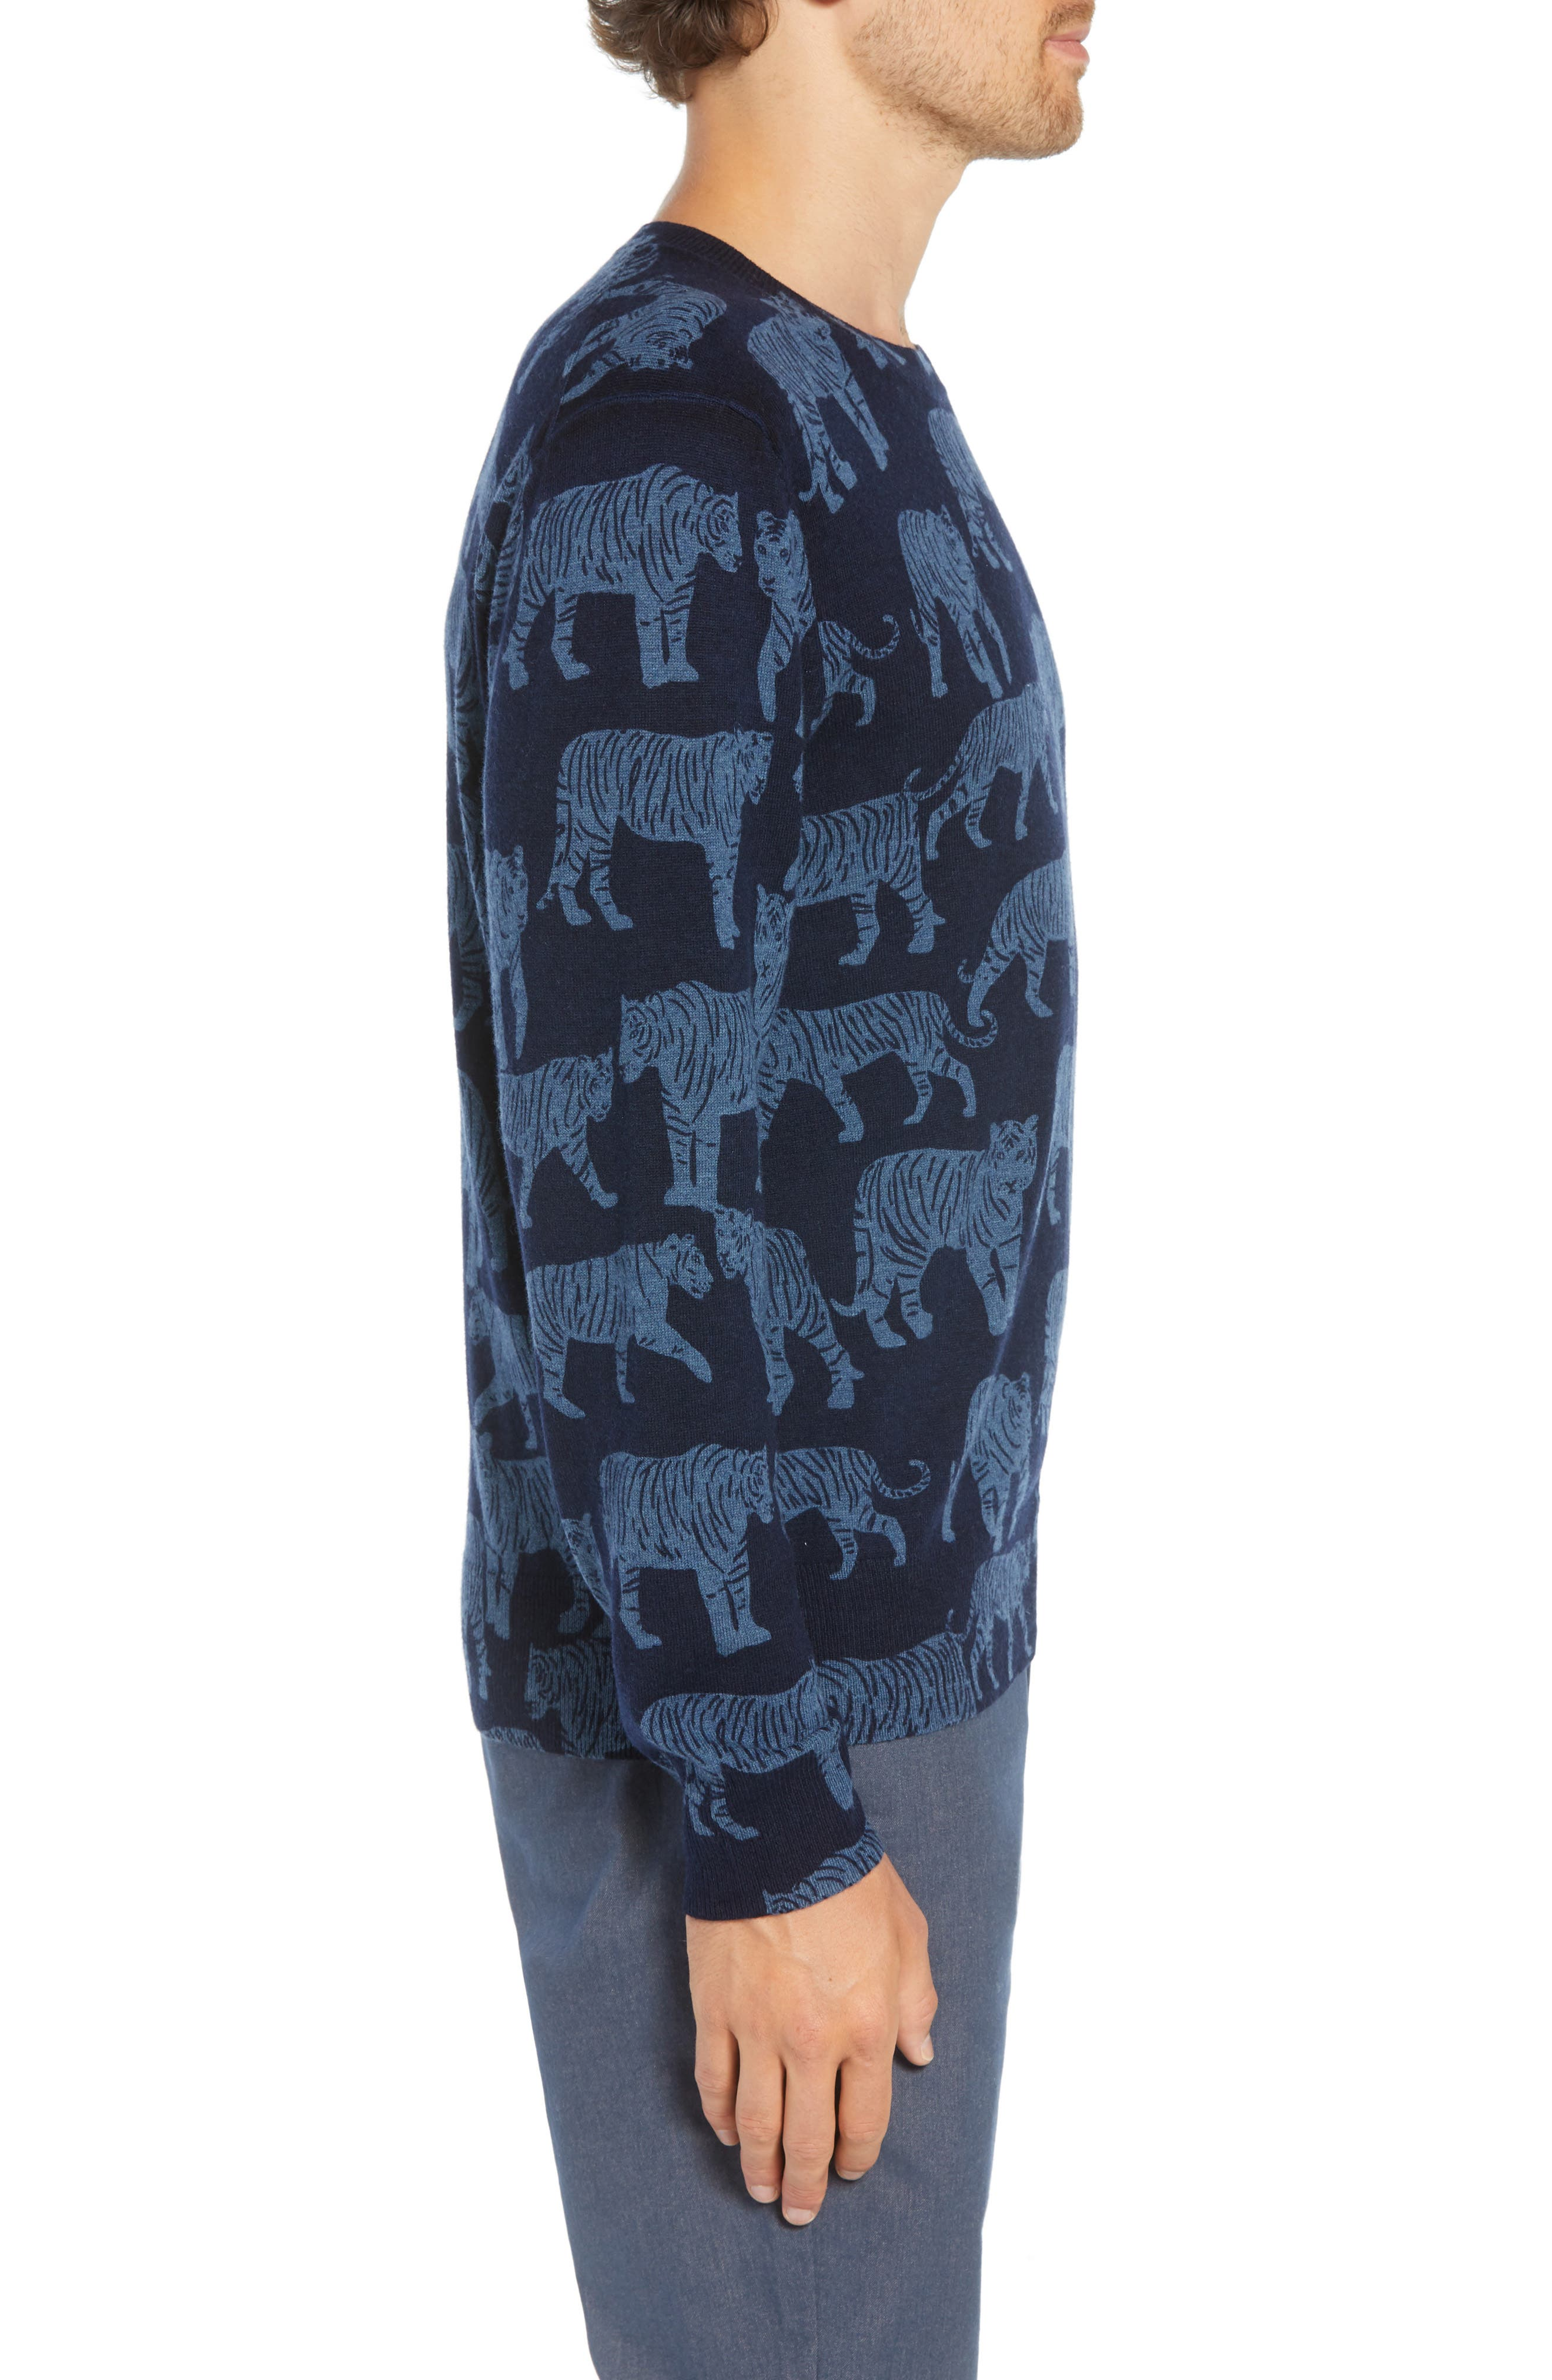 Slim Fit Tiger Print Sweater,                             Alternate thumbnail 3, color,                             NIGHTSHADOW/ FADED NAVY TIGRE